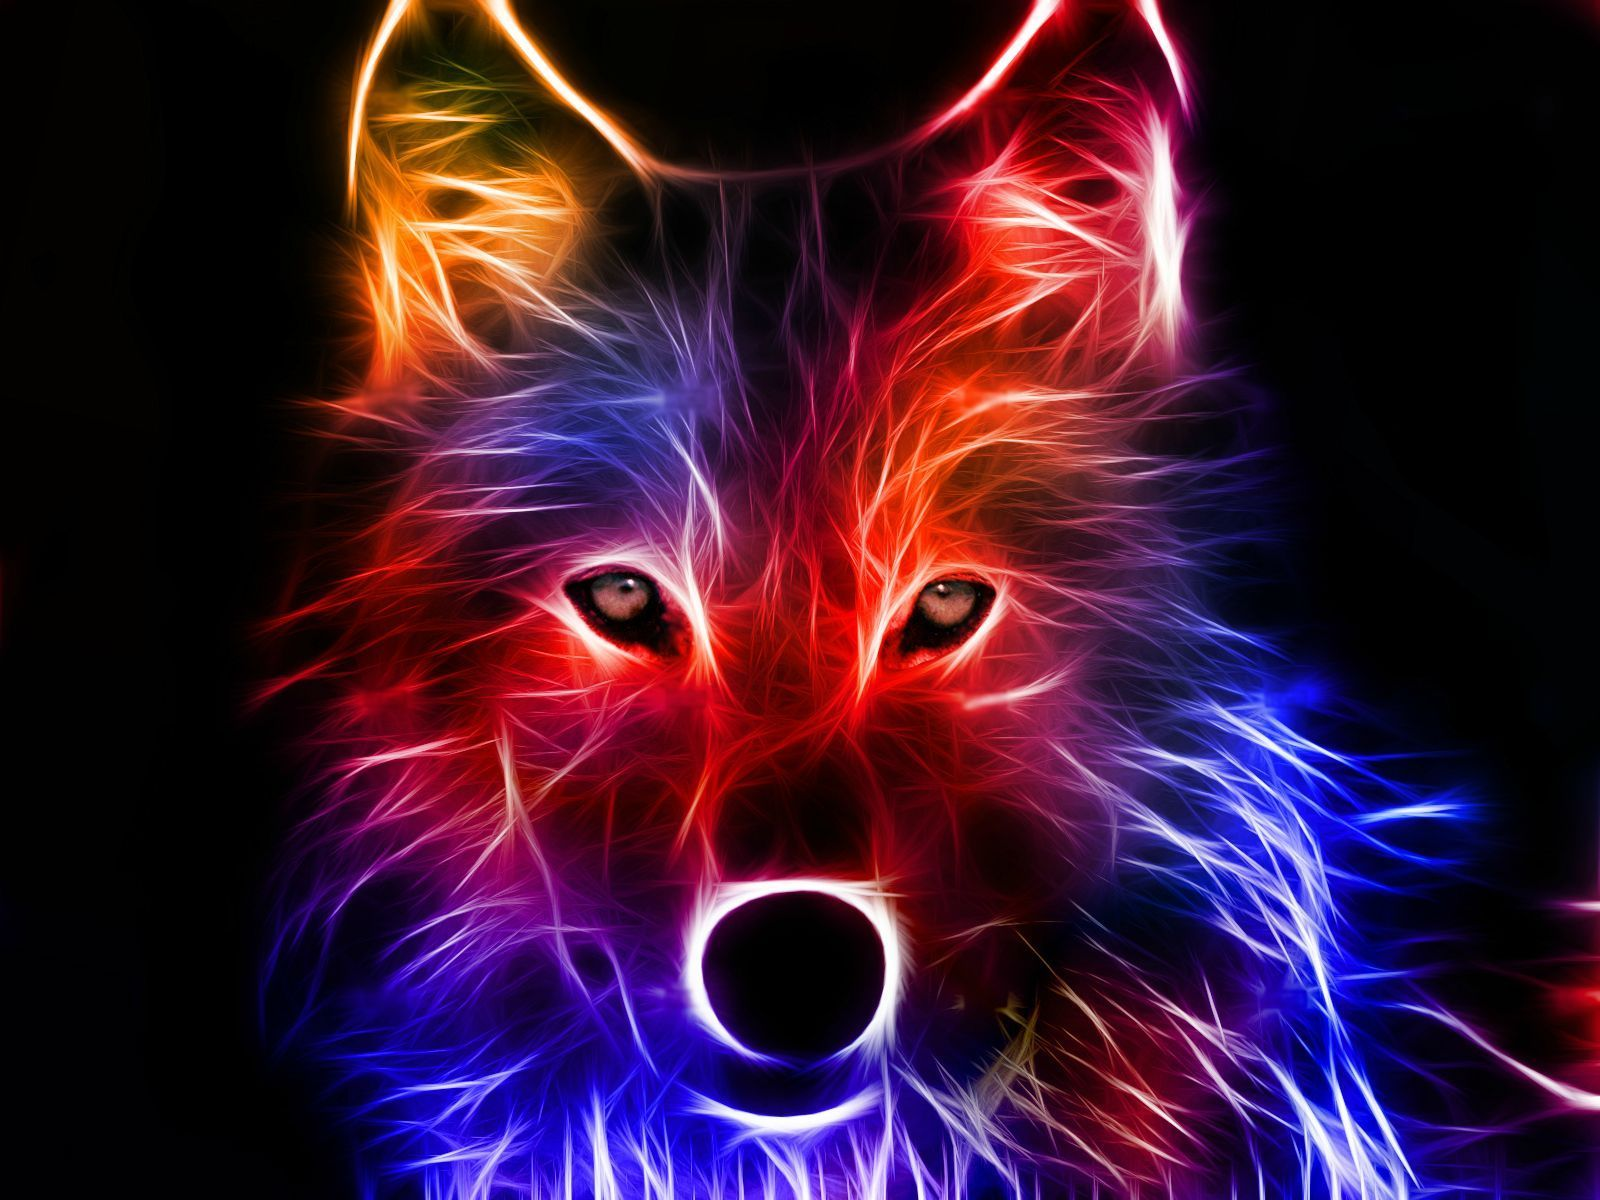 1600x1200 3D Wallpapers Free to Download | Live wallpapers, 3d and Wolf